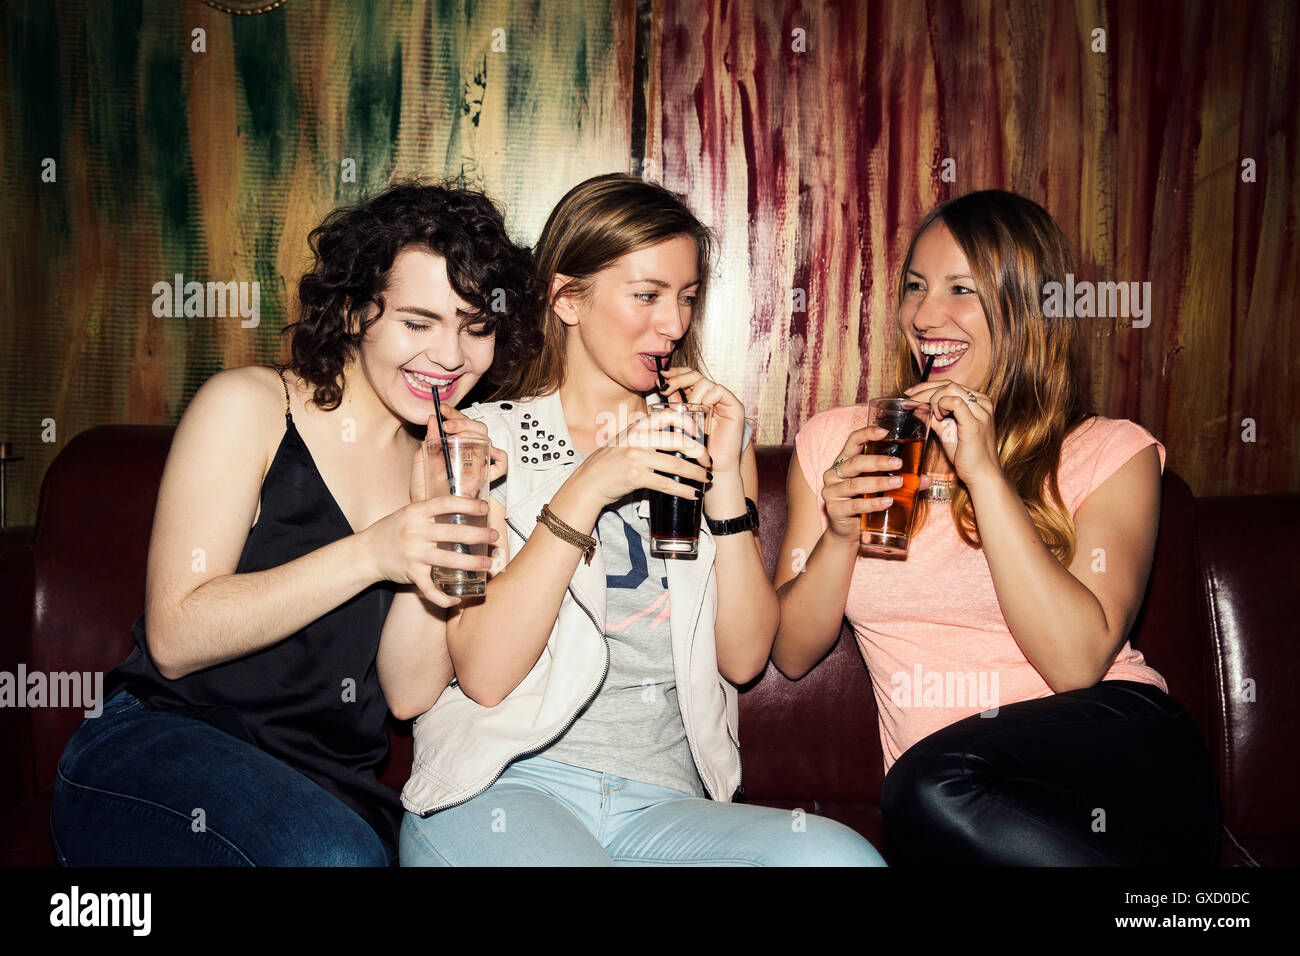 Three adult female friends drinking in bar - Stock Image